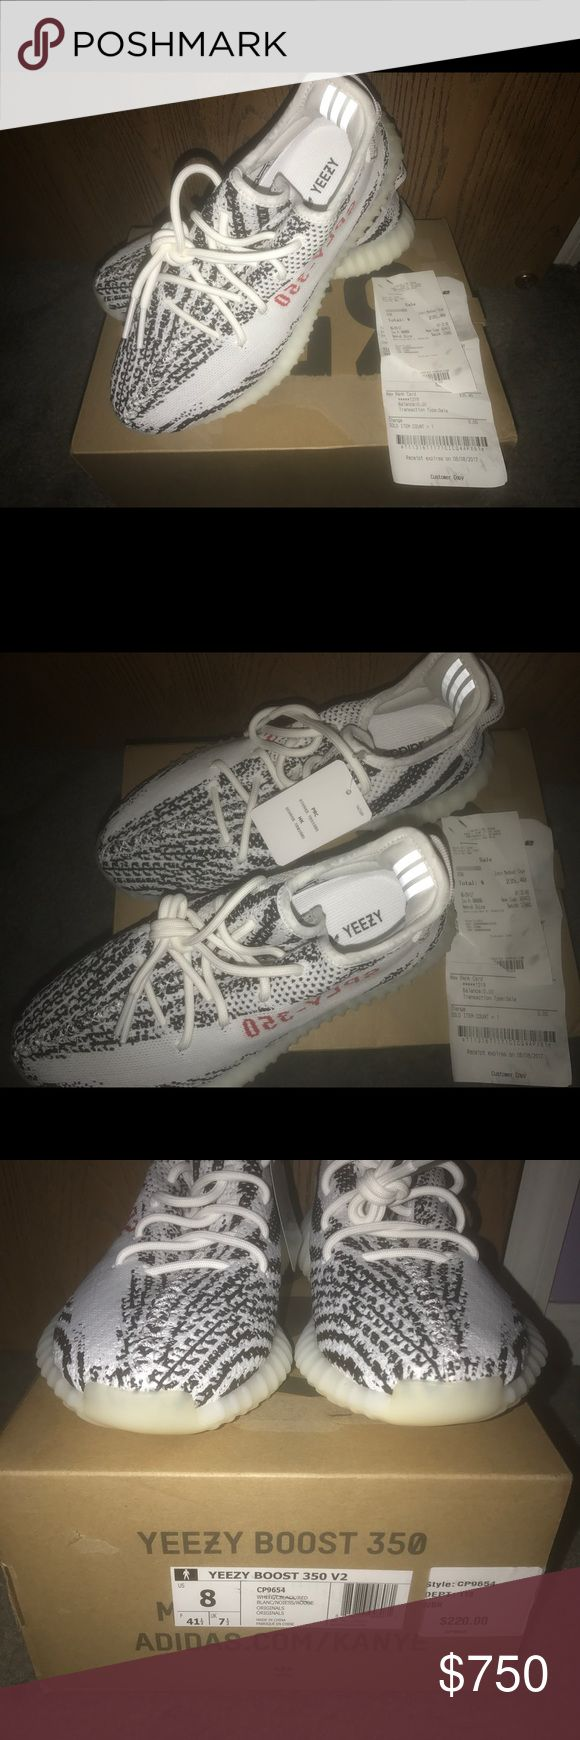 Yeezy Boost 350 V2 Zebra Size 8 BRAND NEW YEEZY BOOST 350 V2 ZEBRA SIZE 8!! I PURCHASED THEM THE MORNING THEY RELEASED FROM FINISH LINE! RECEIPT SHOWN IN PICTURES. THE BOX HAS BEEN DAMAGED BY TAPE SO THAT IS WHY THE BOX LOOKS ODD WHERE THE TAPE HAS BEEN REMOVED. PLEASE LET ME KNOW IF YOU HAVE ANY QUESTIONS! adidas Shoes Sneakers